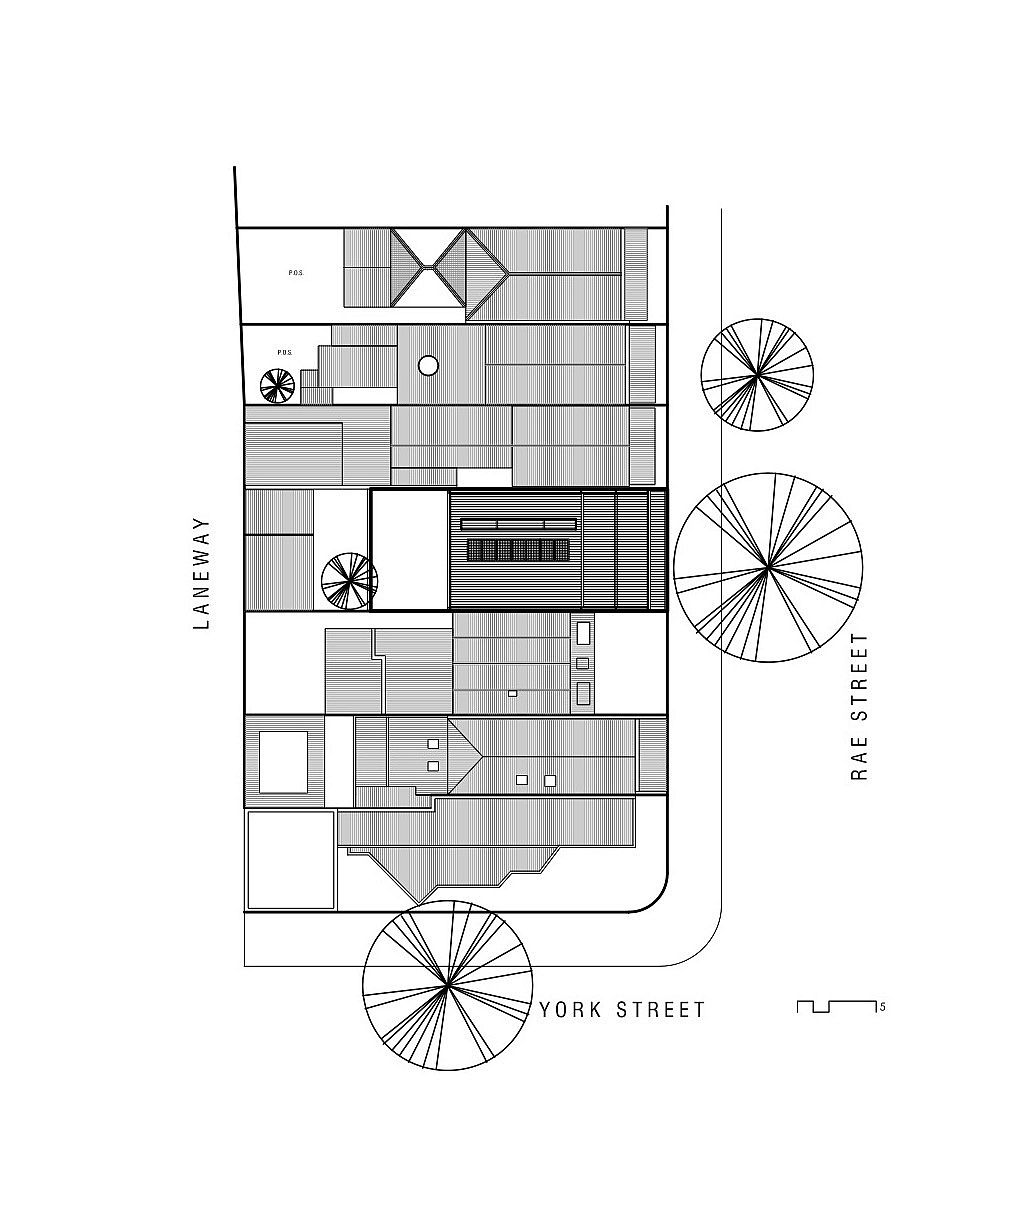 Site plan of Casa de Gatos in Australia